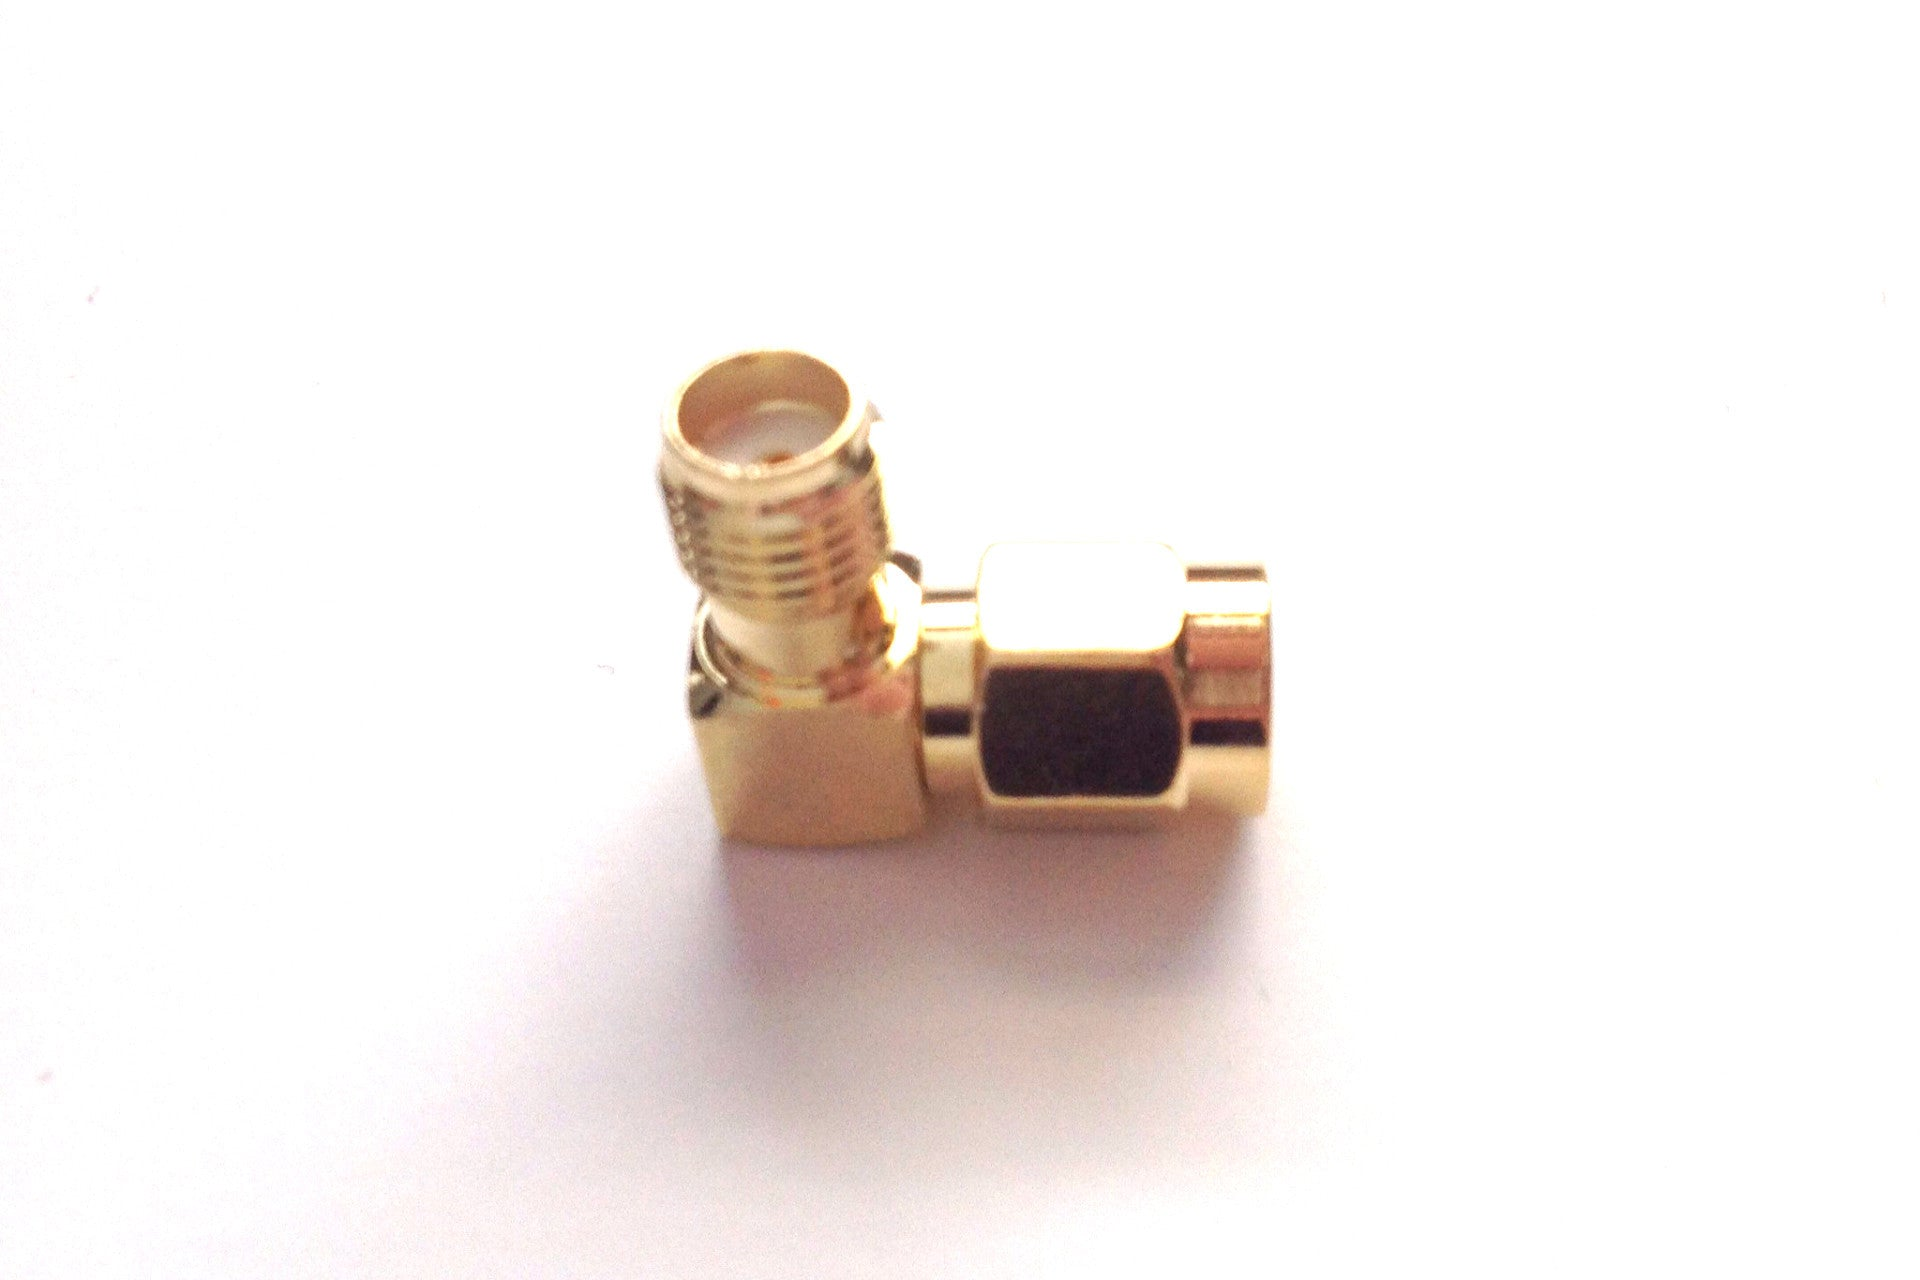 L Shaped SMA to Female Connector